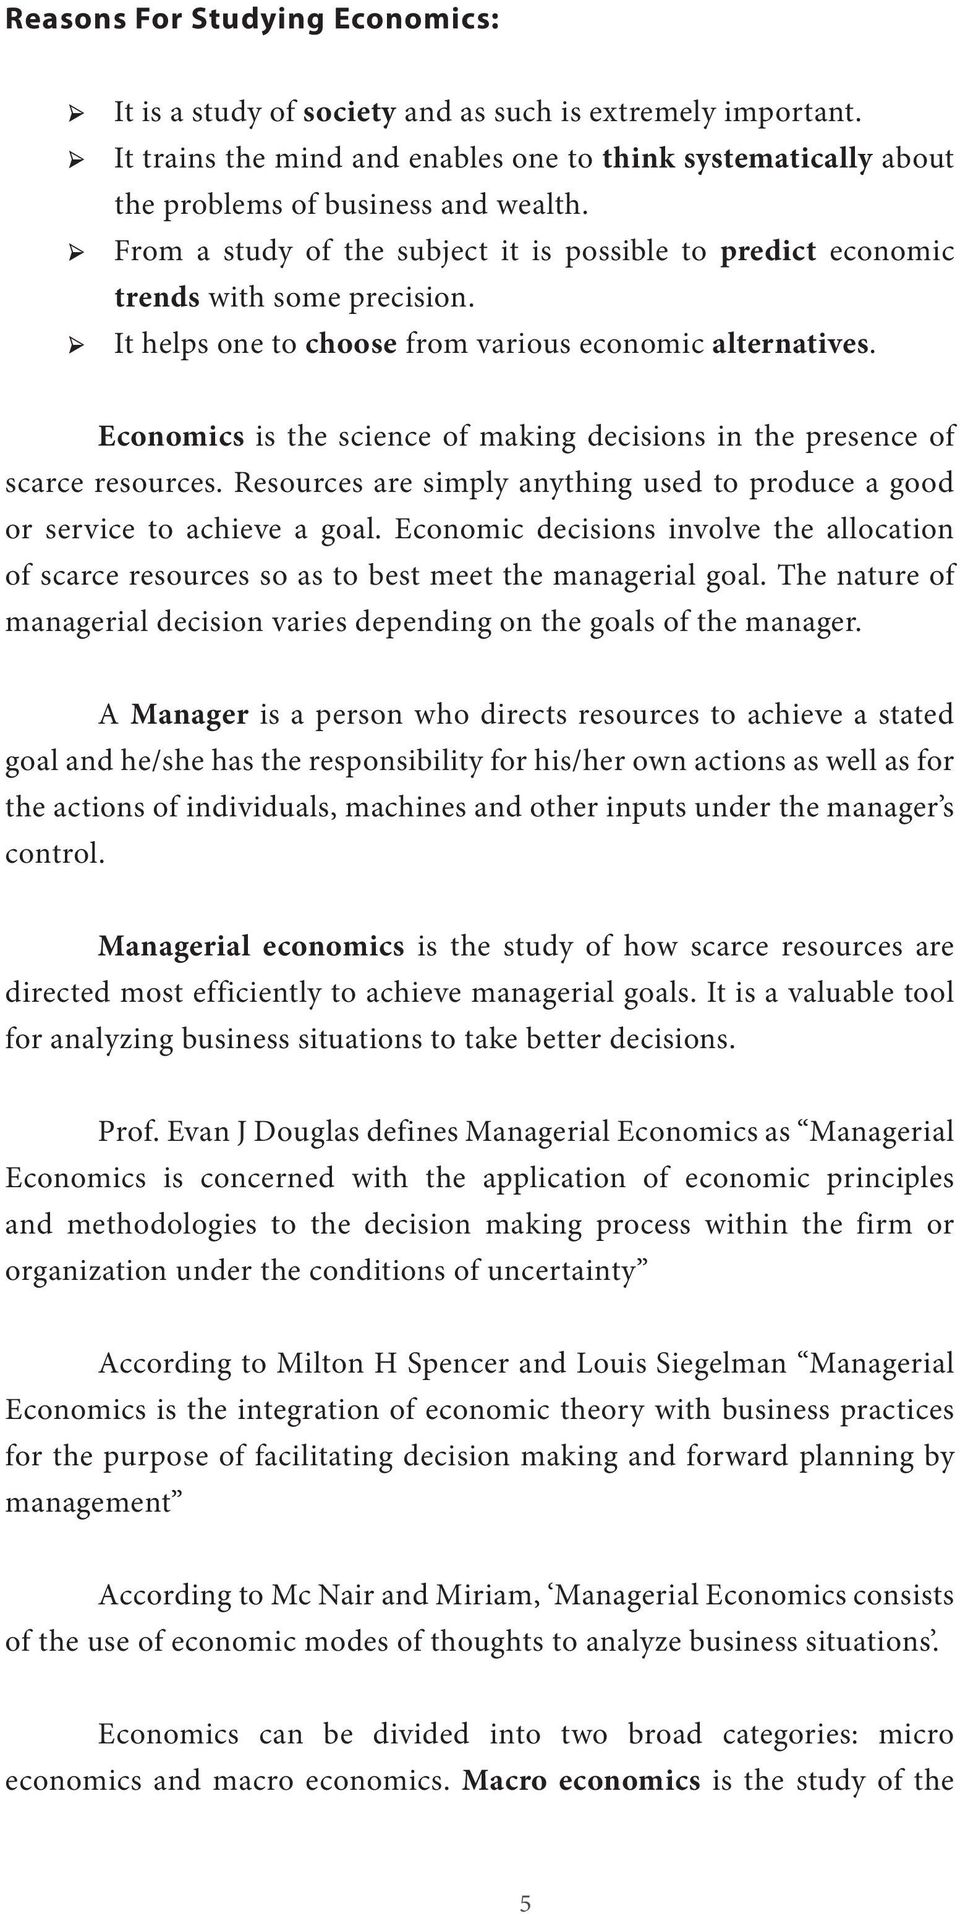 How to do well in managerial economics